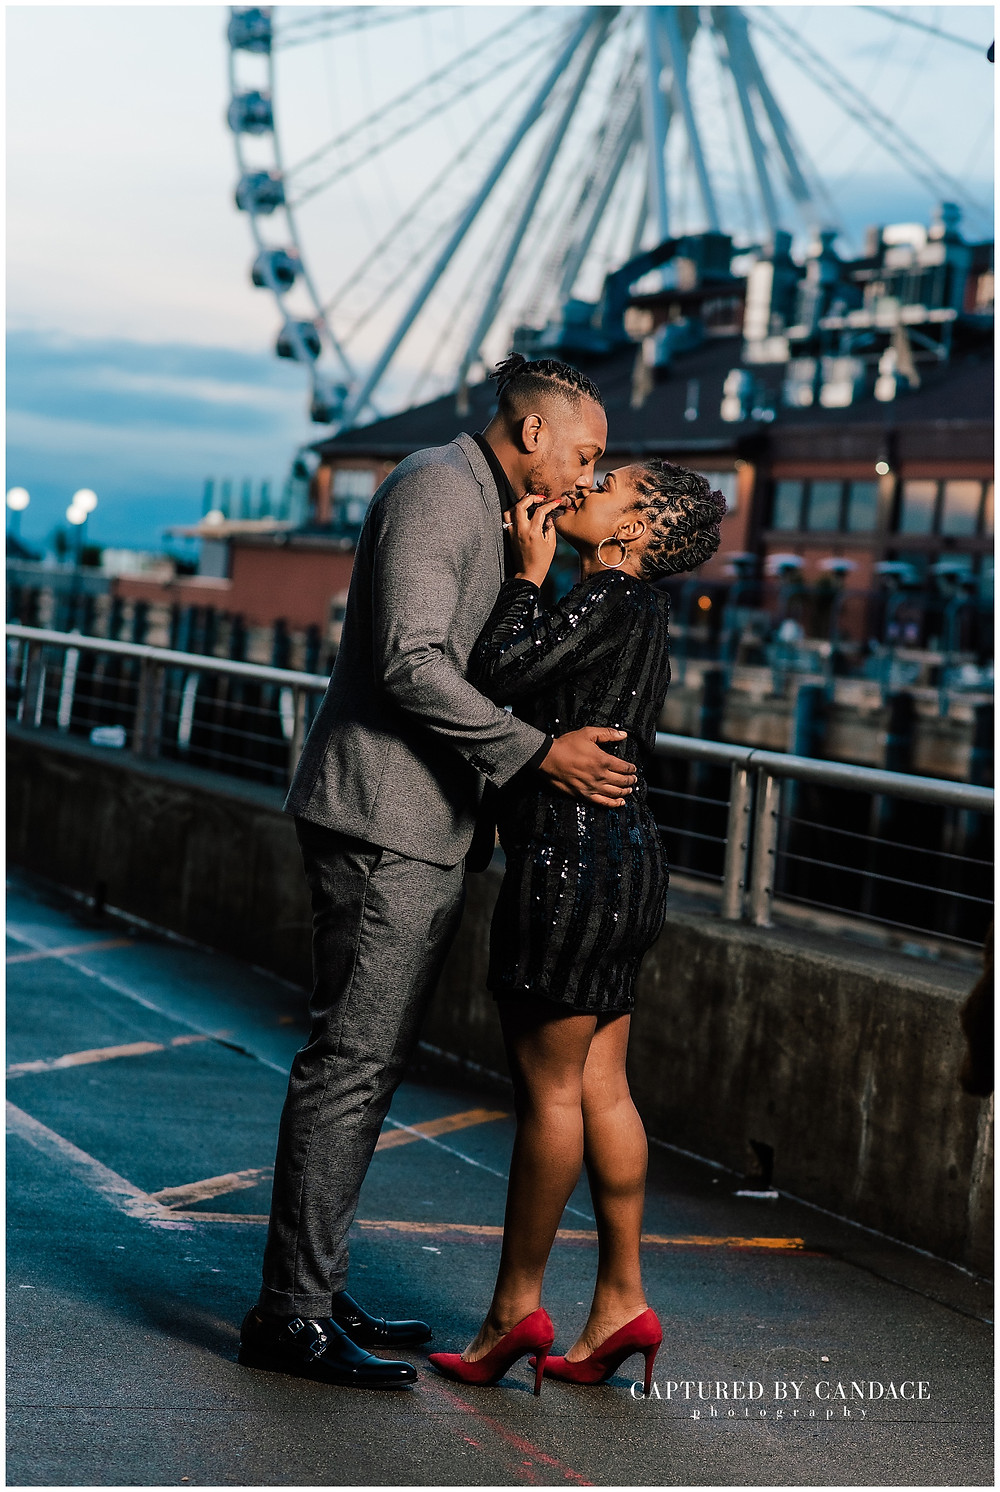 Seattle big wheel engagement photo session in downtown Seattle with Captured by Candace photography